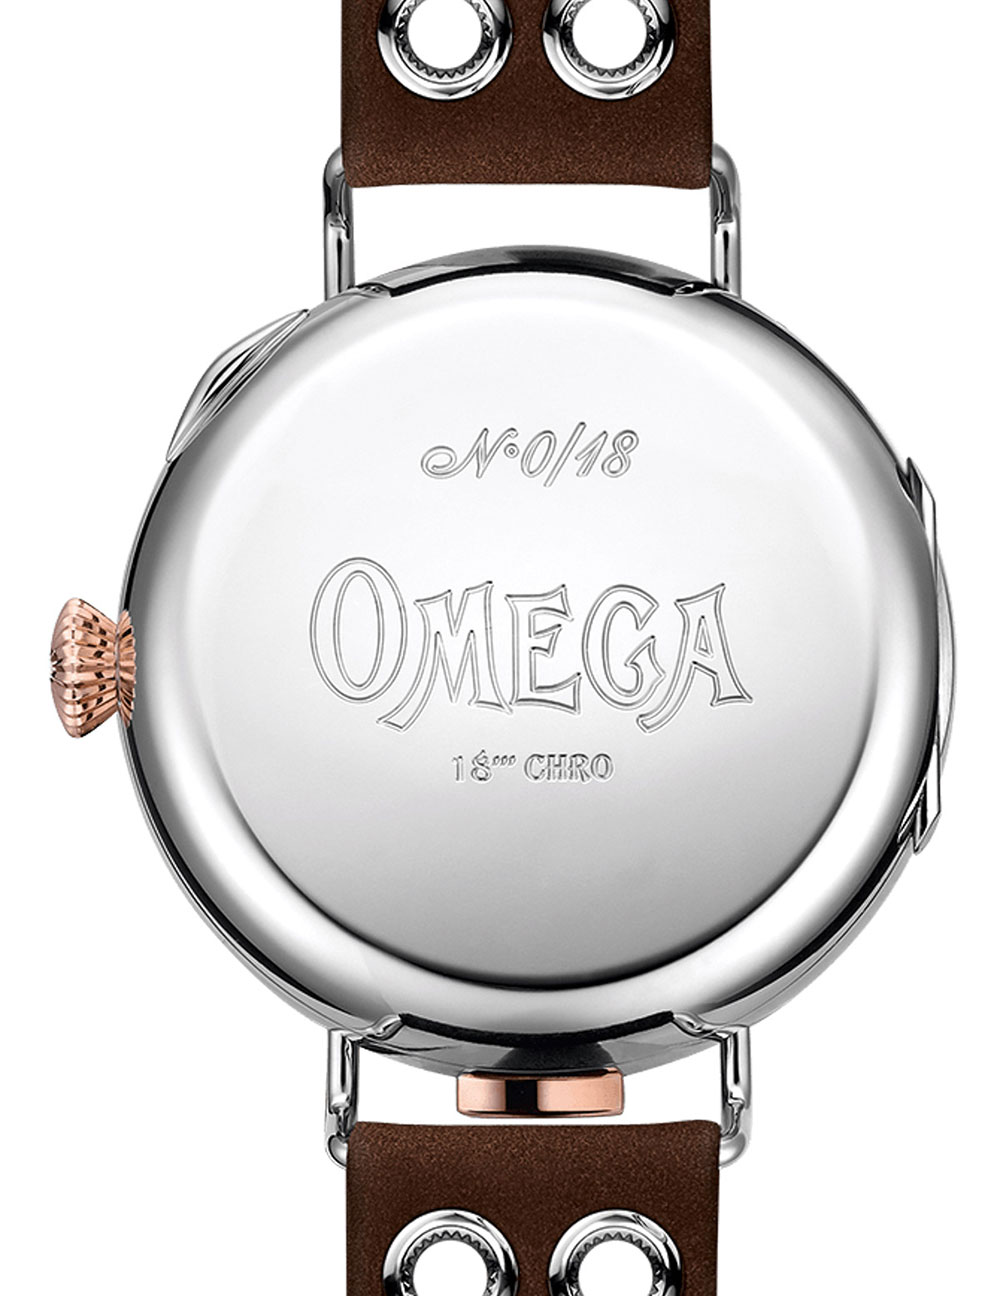 First OMEGA Wrist-Chronograph Limited Edition